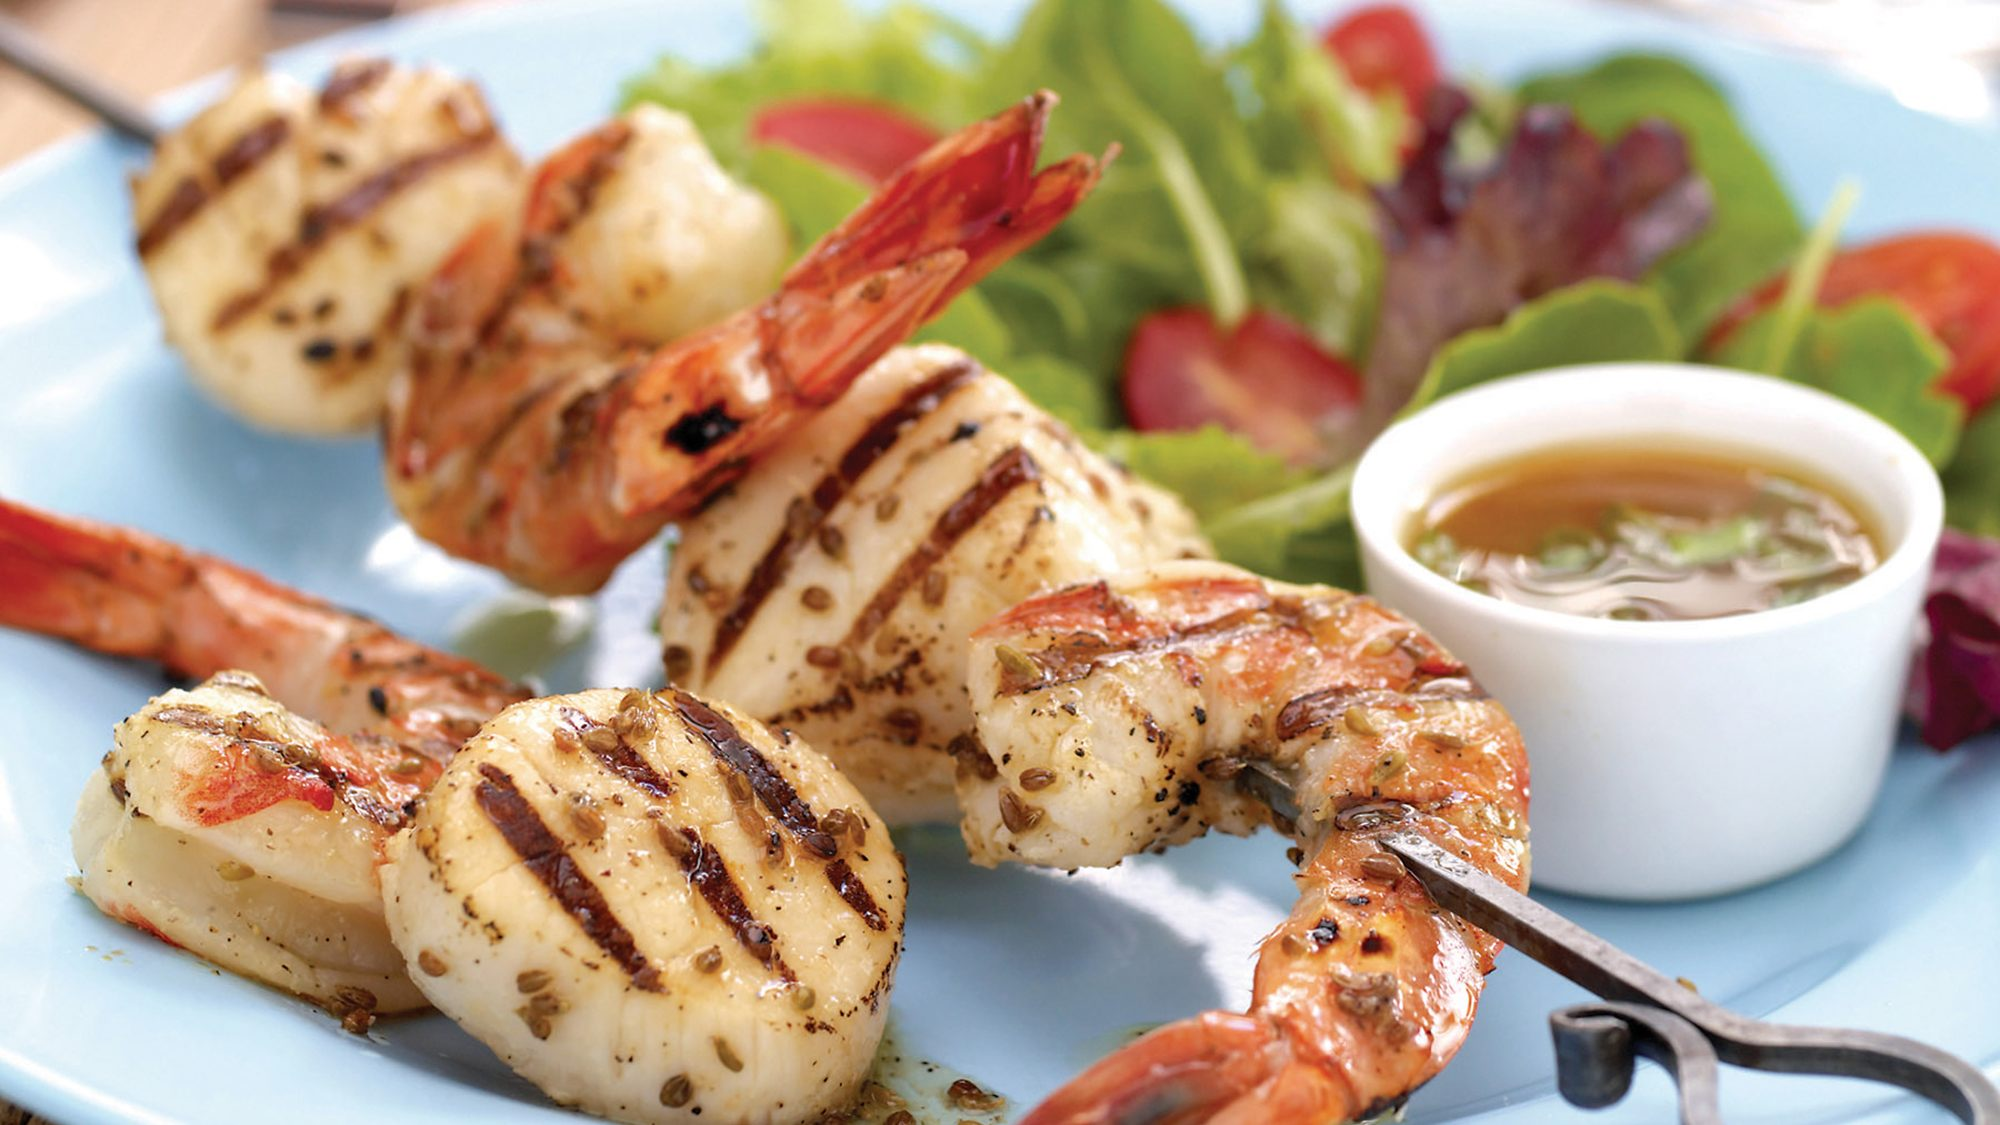 anise-orange-shrimp-and-scallop-skewers.jpg